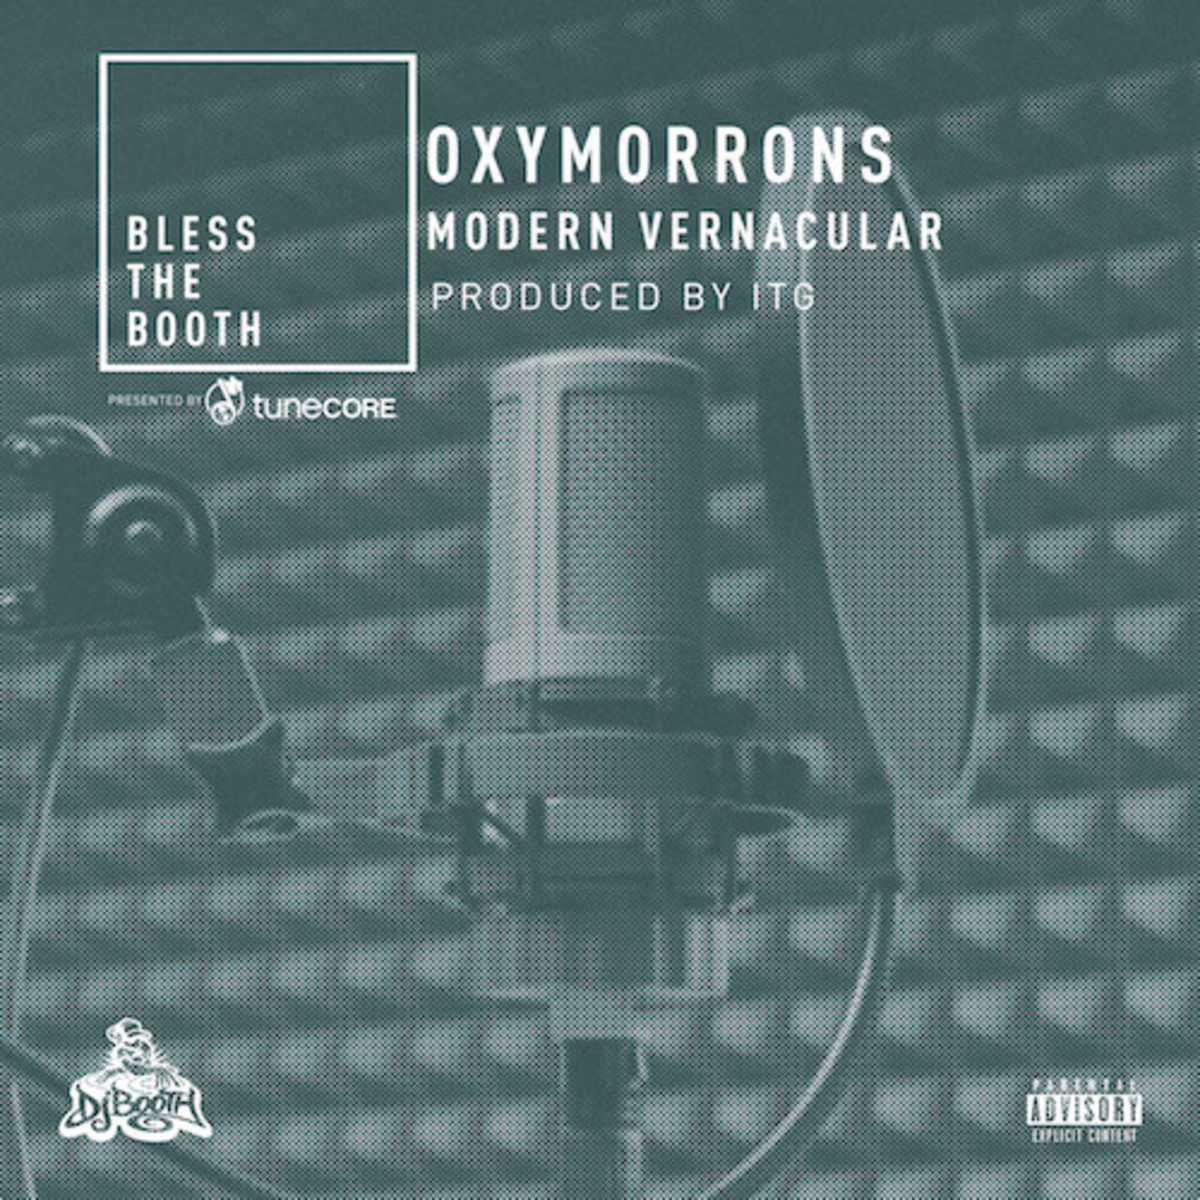 oxymorrons-bless-the-booth.jpg